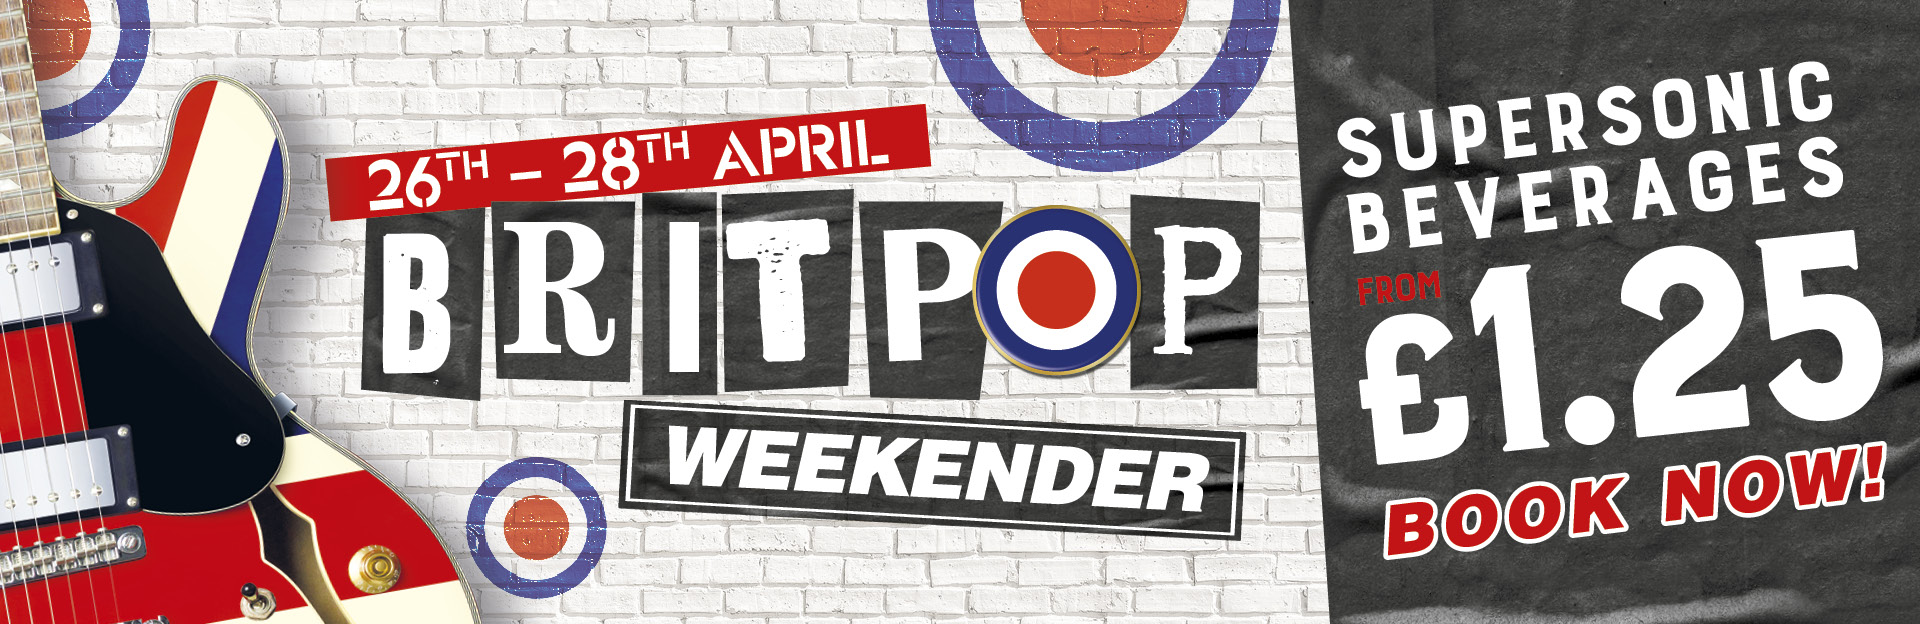 Britpop Weekender at The Green Dragon